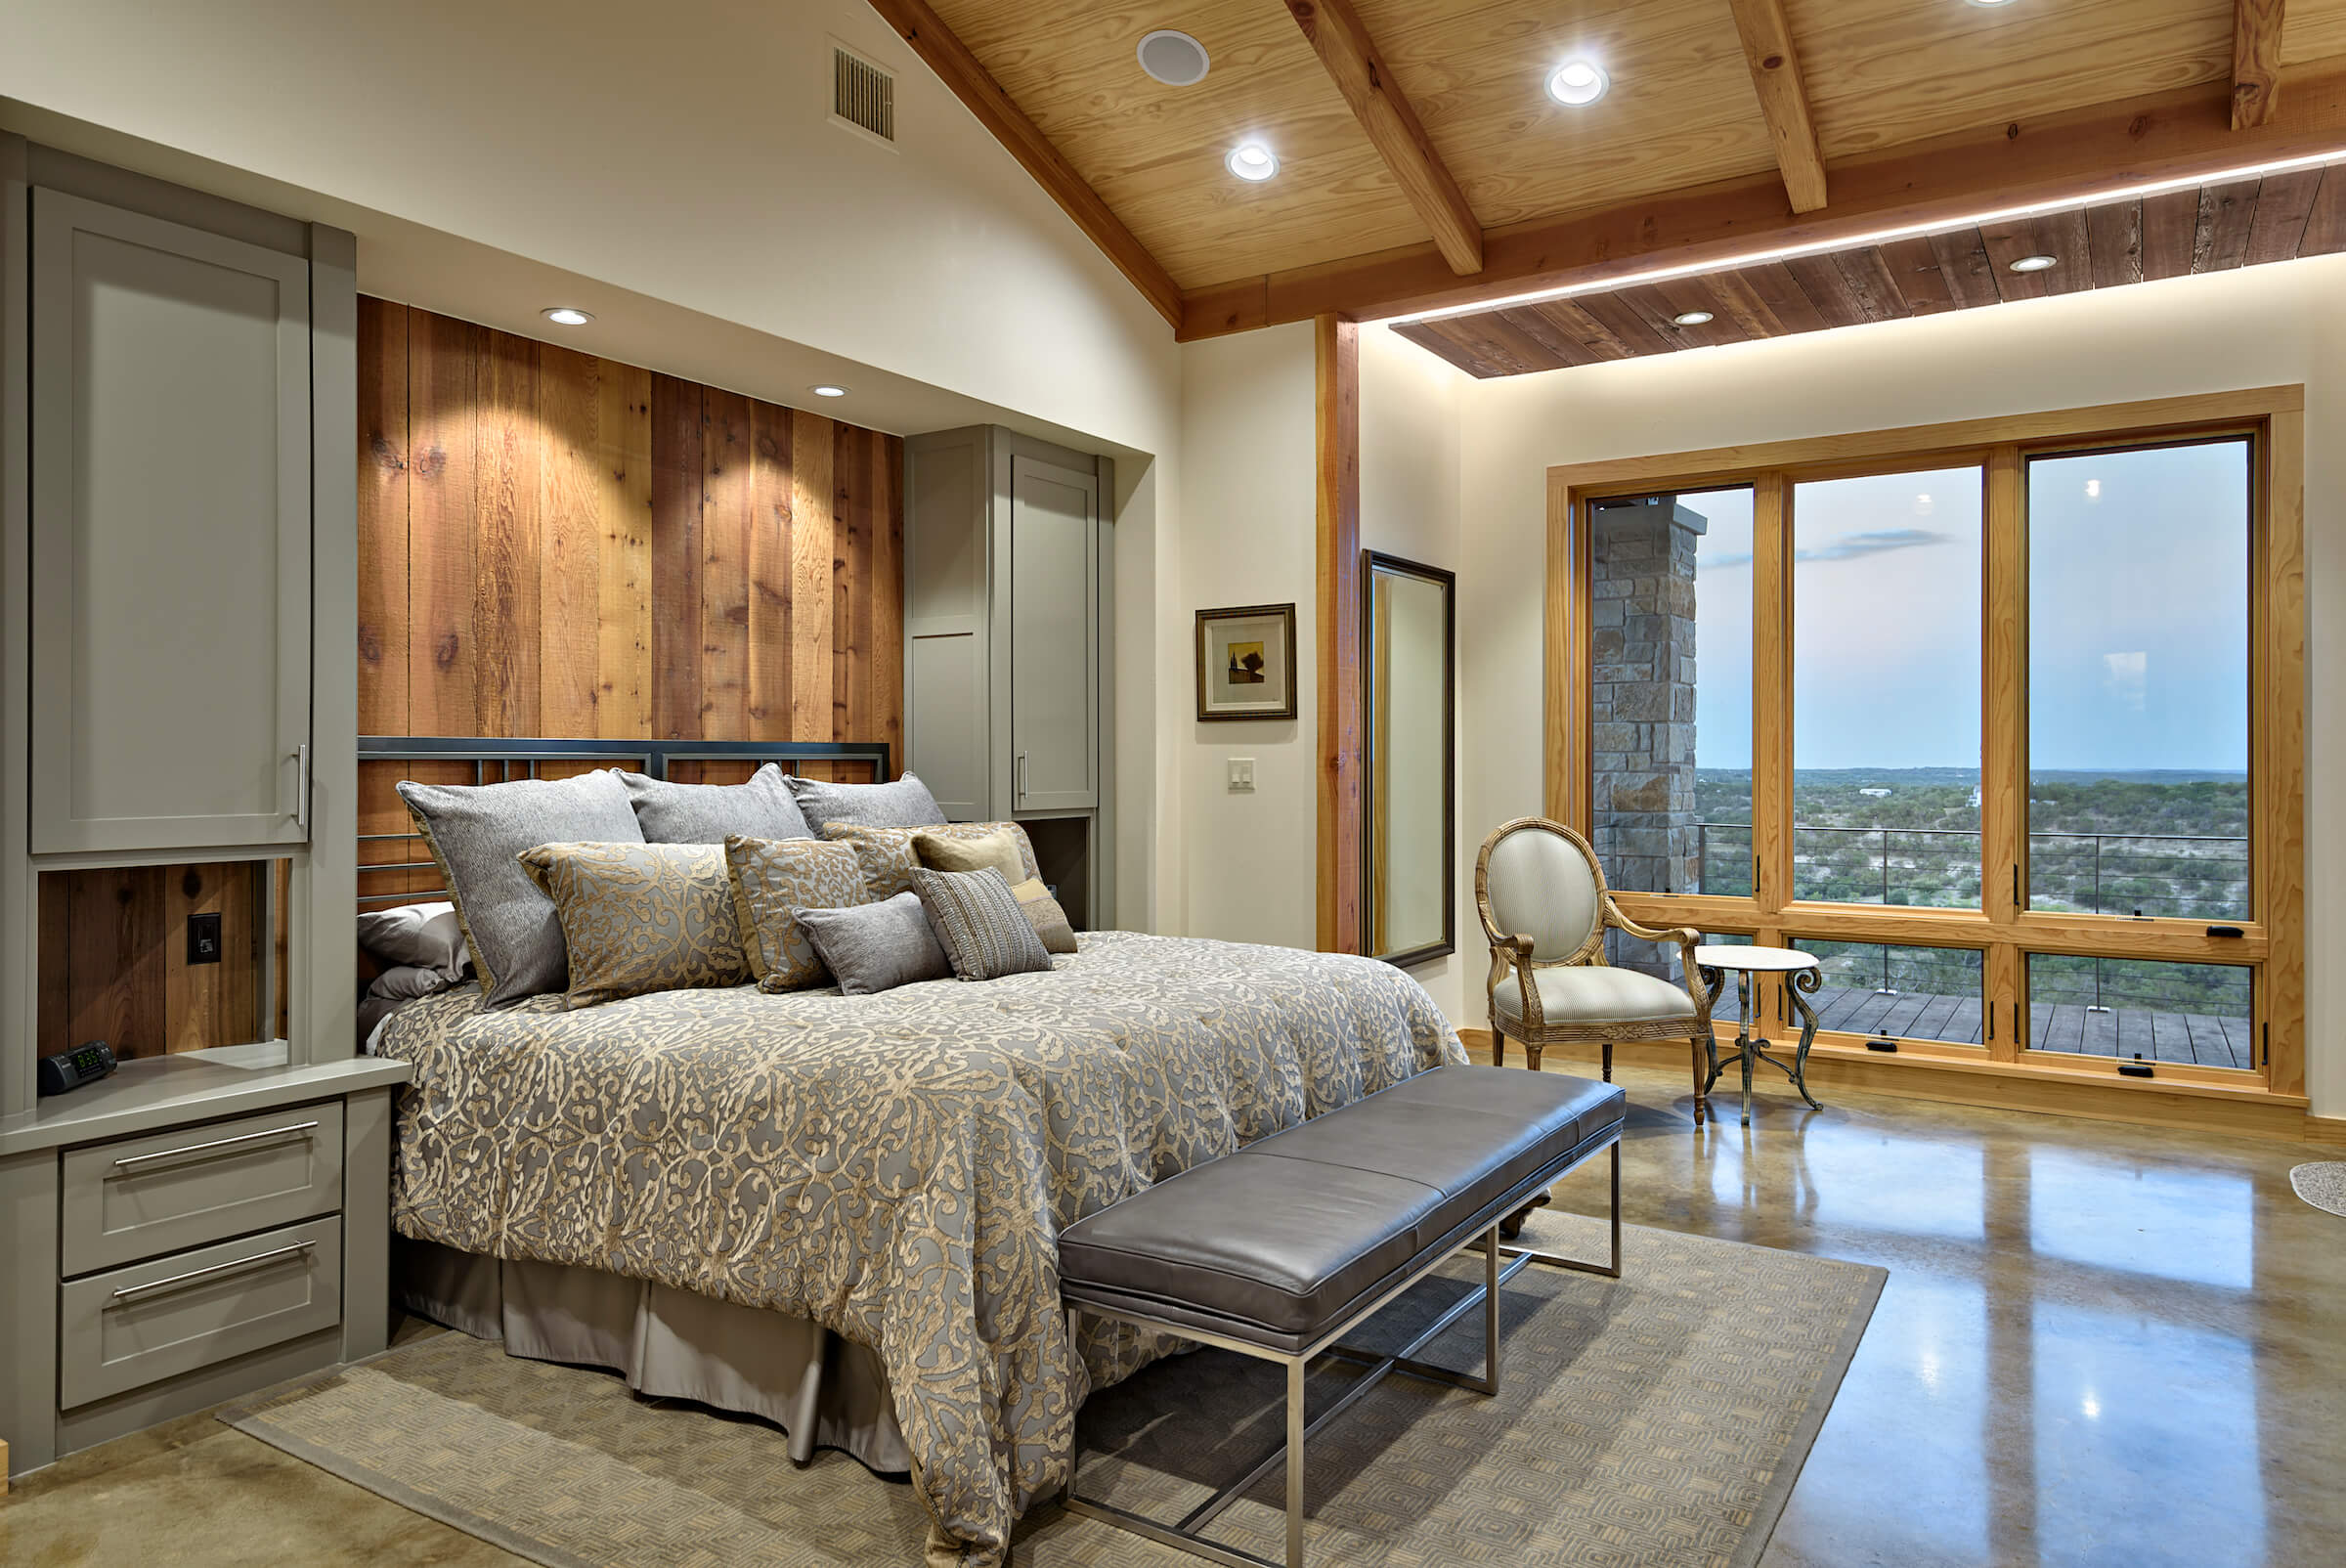 Hill country master bedroom